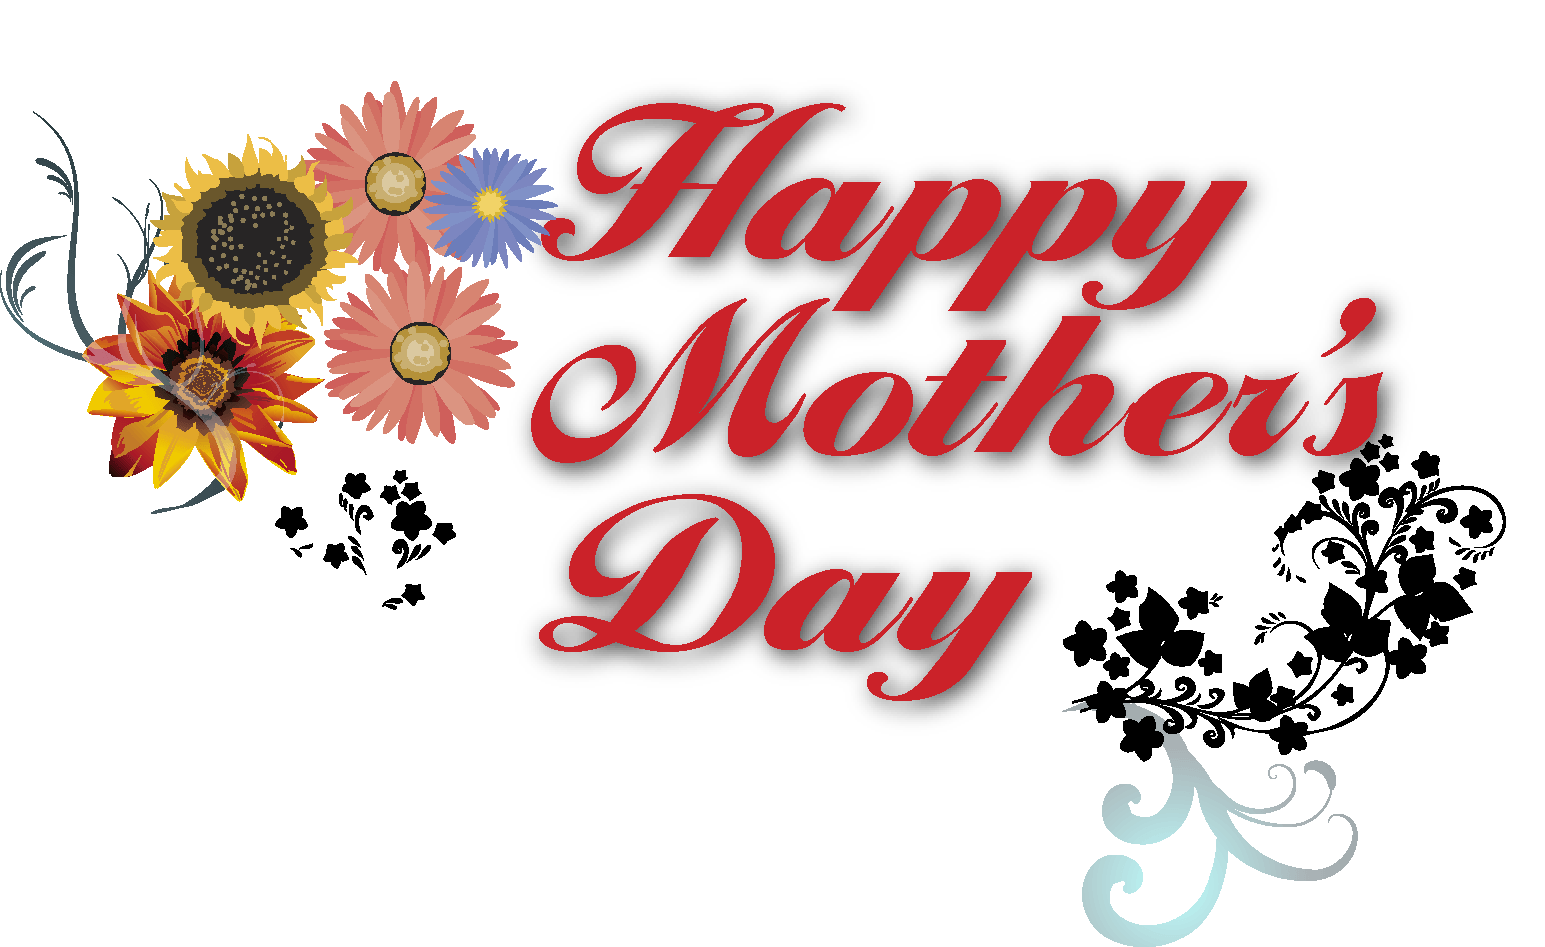 Happy Mothers Day wallpaper png